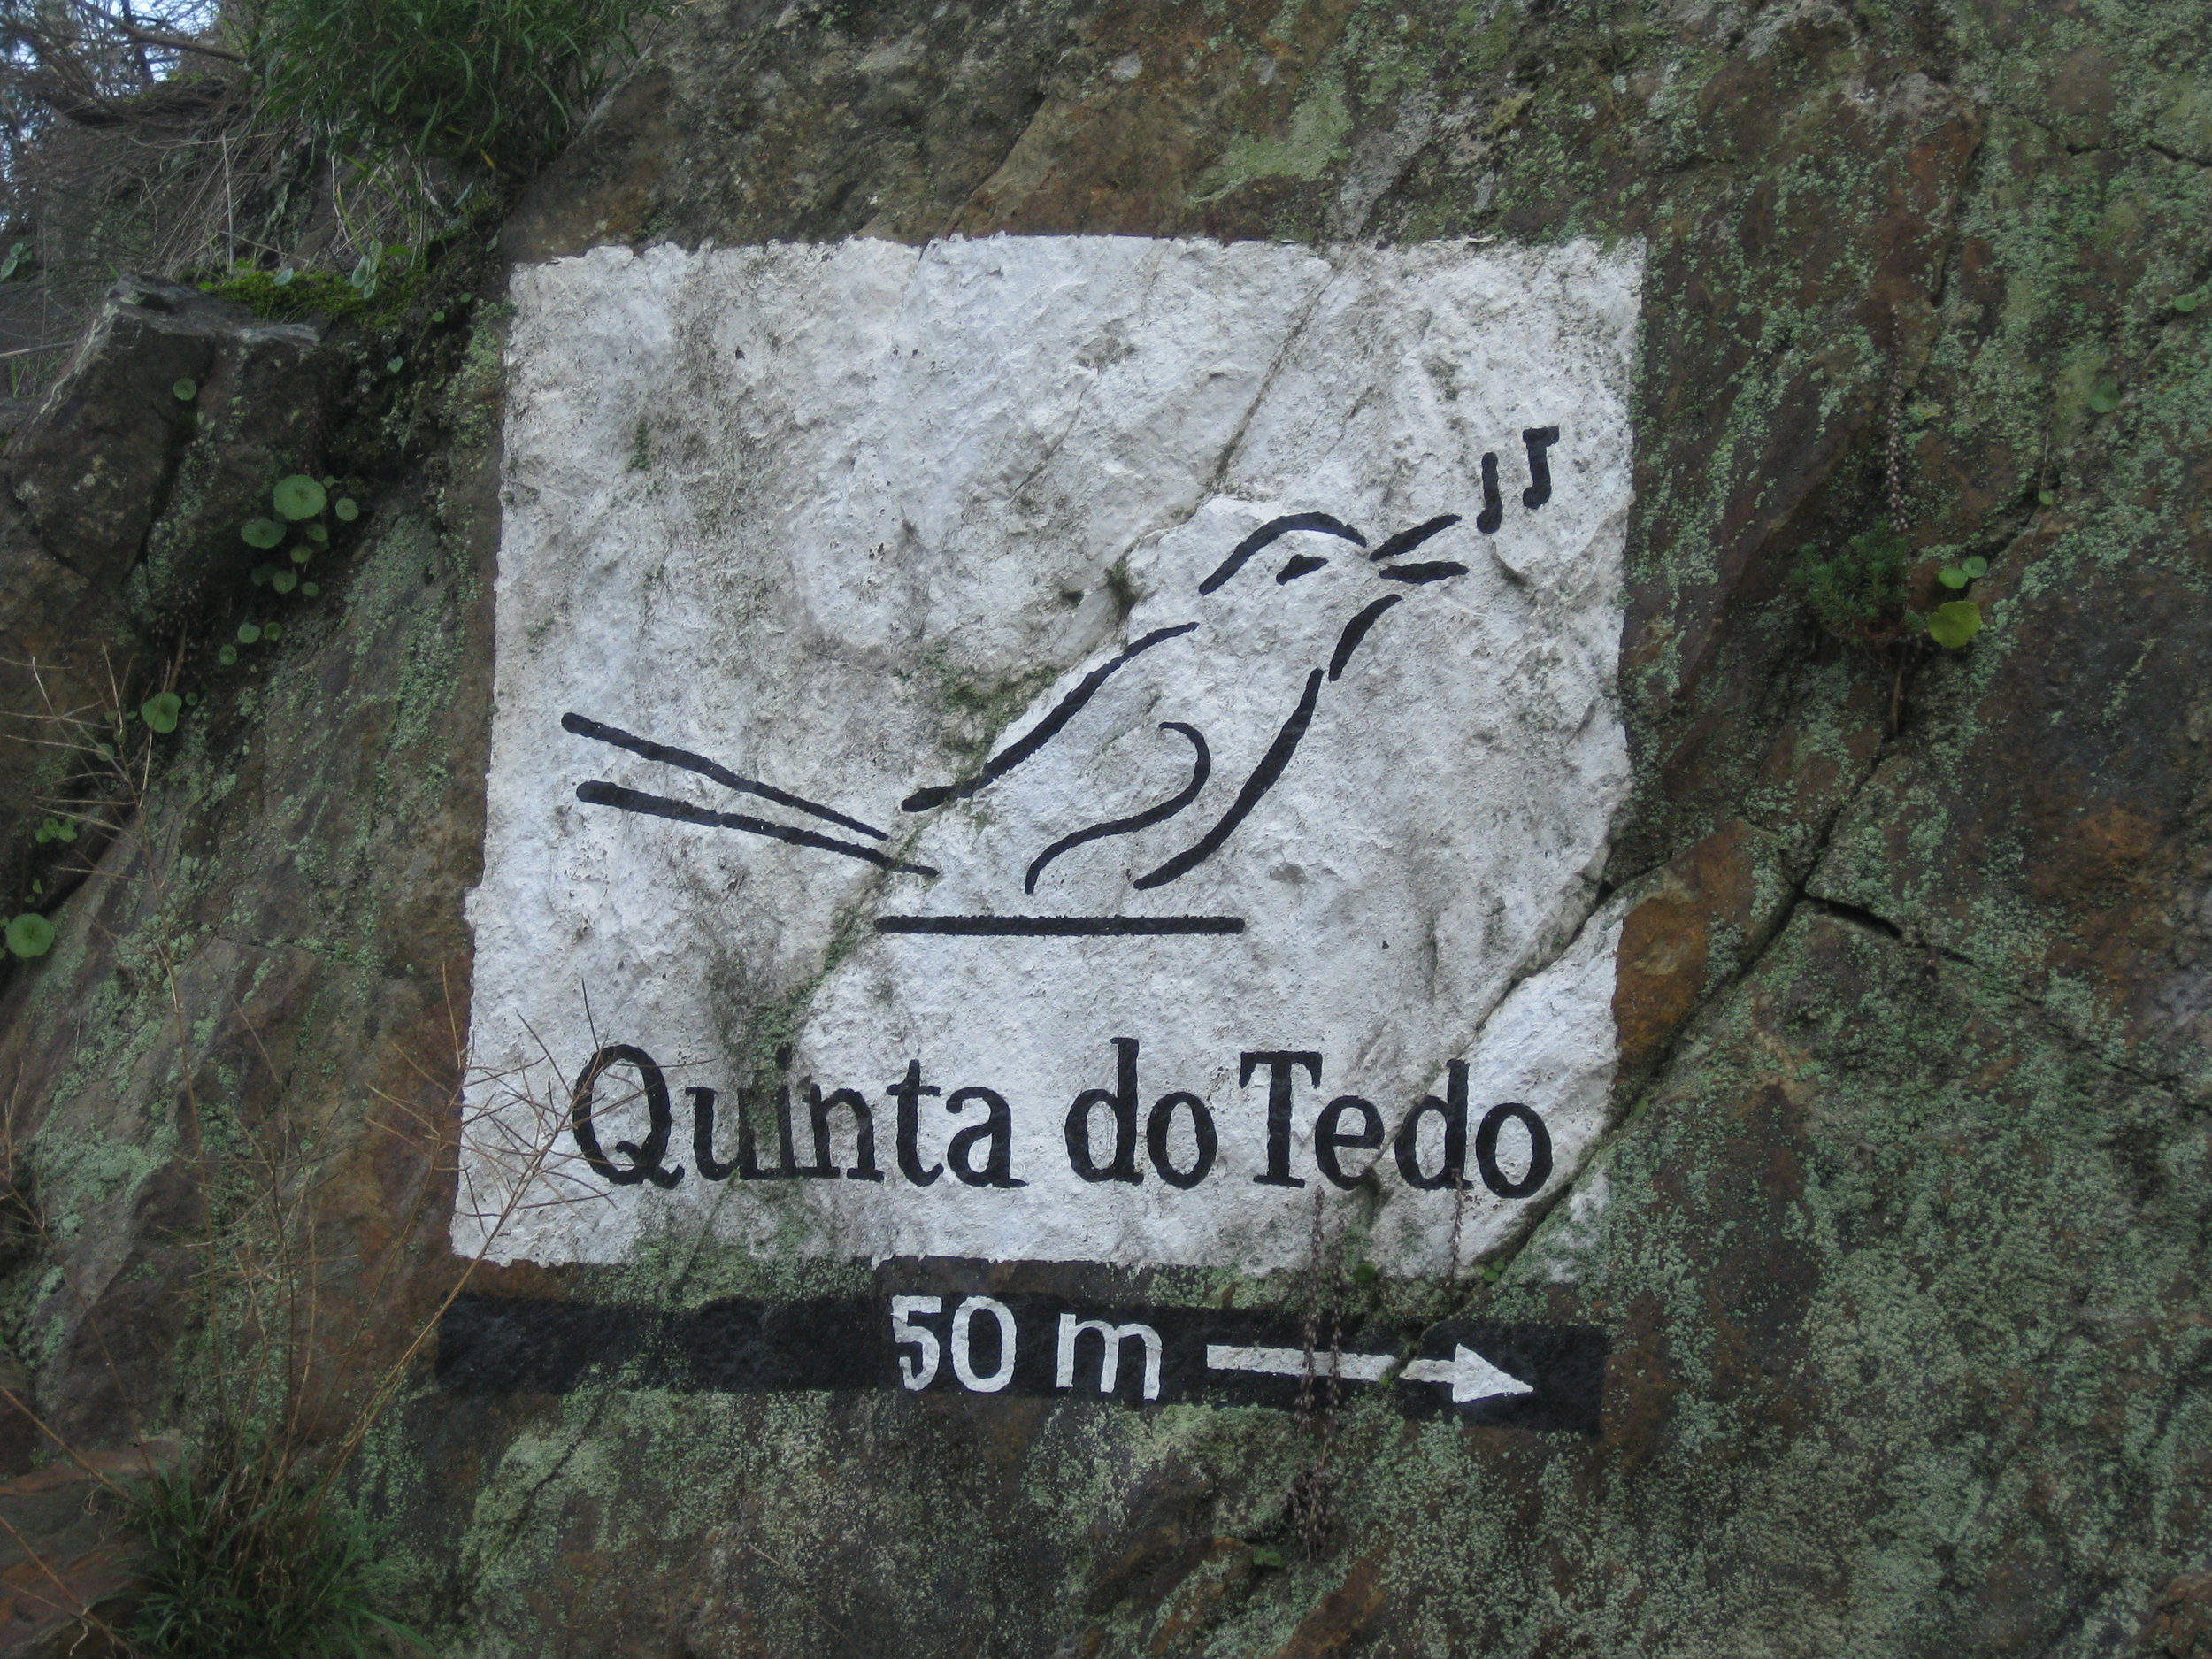 Another kind of marker - showing how to arrive to Quinta do Tedo